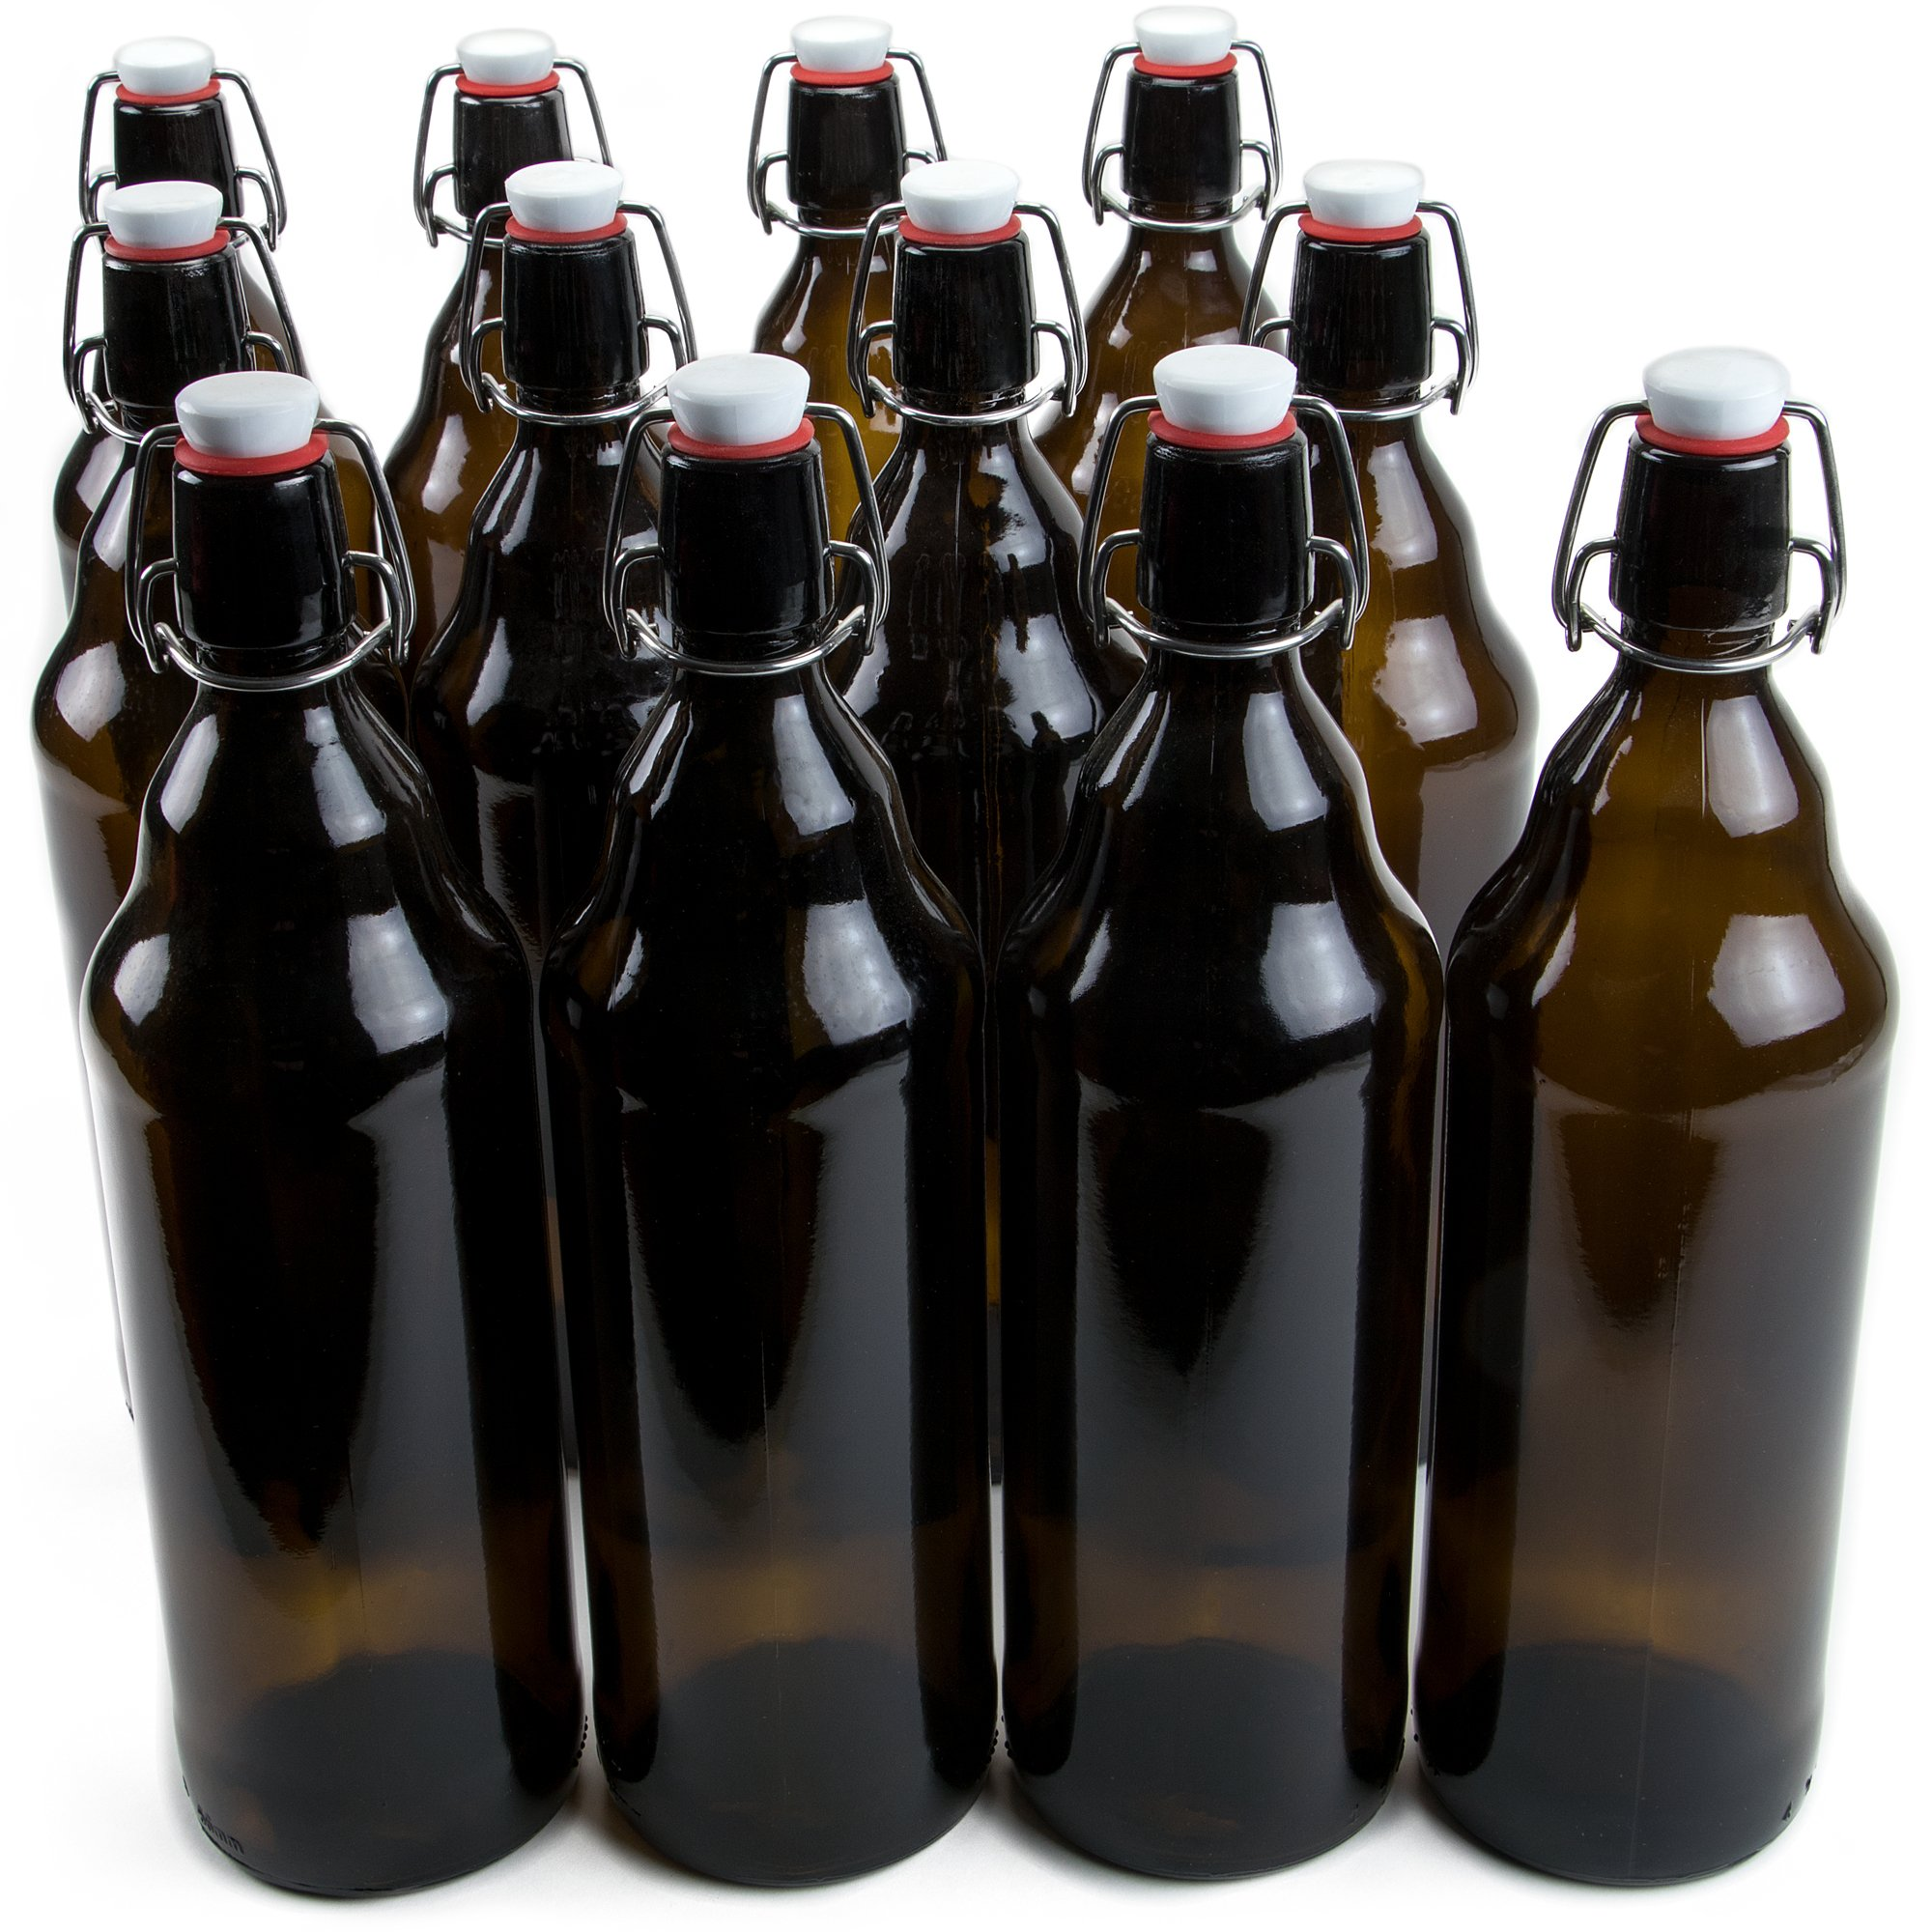 33 oz. Grolsch Glass Beer Bottles, Quart Size - Airtight Swing Top Seal Storage for Home Brewing of Alcohol, Kombucha Tea, Homemade Soda by Cocktailor (12-pack) by Cocktailor